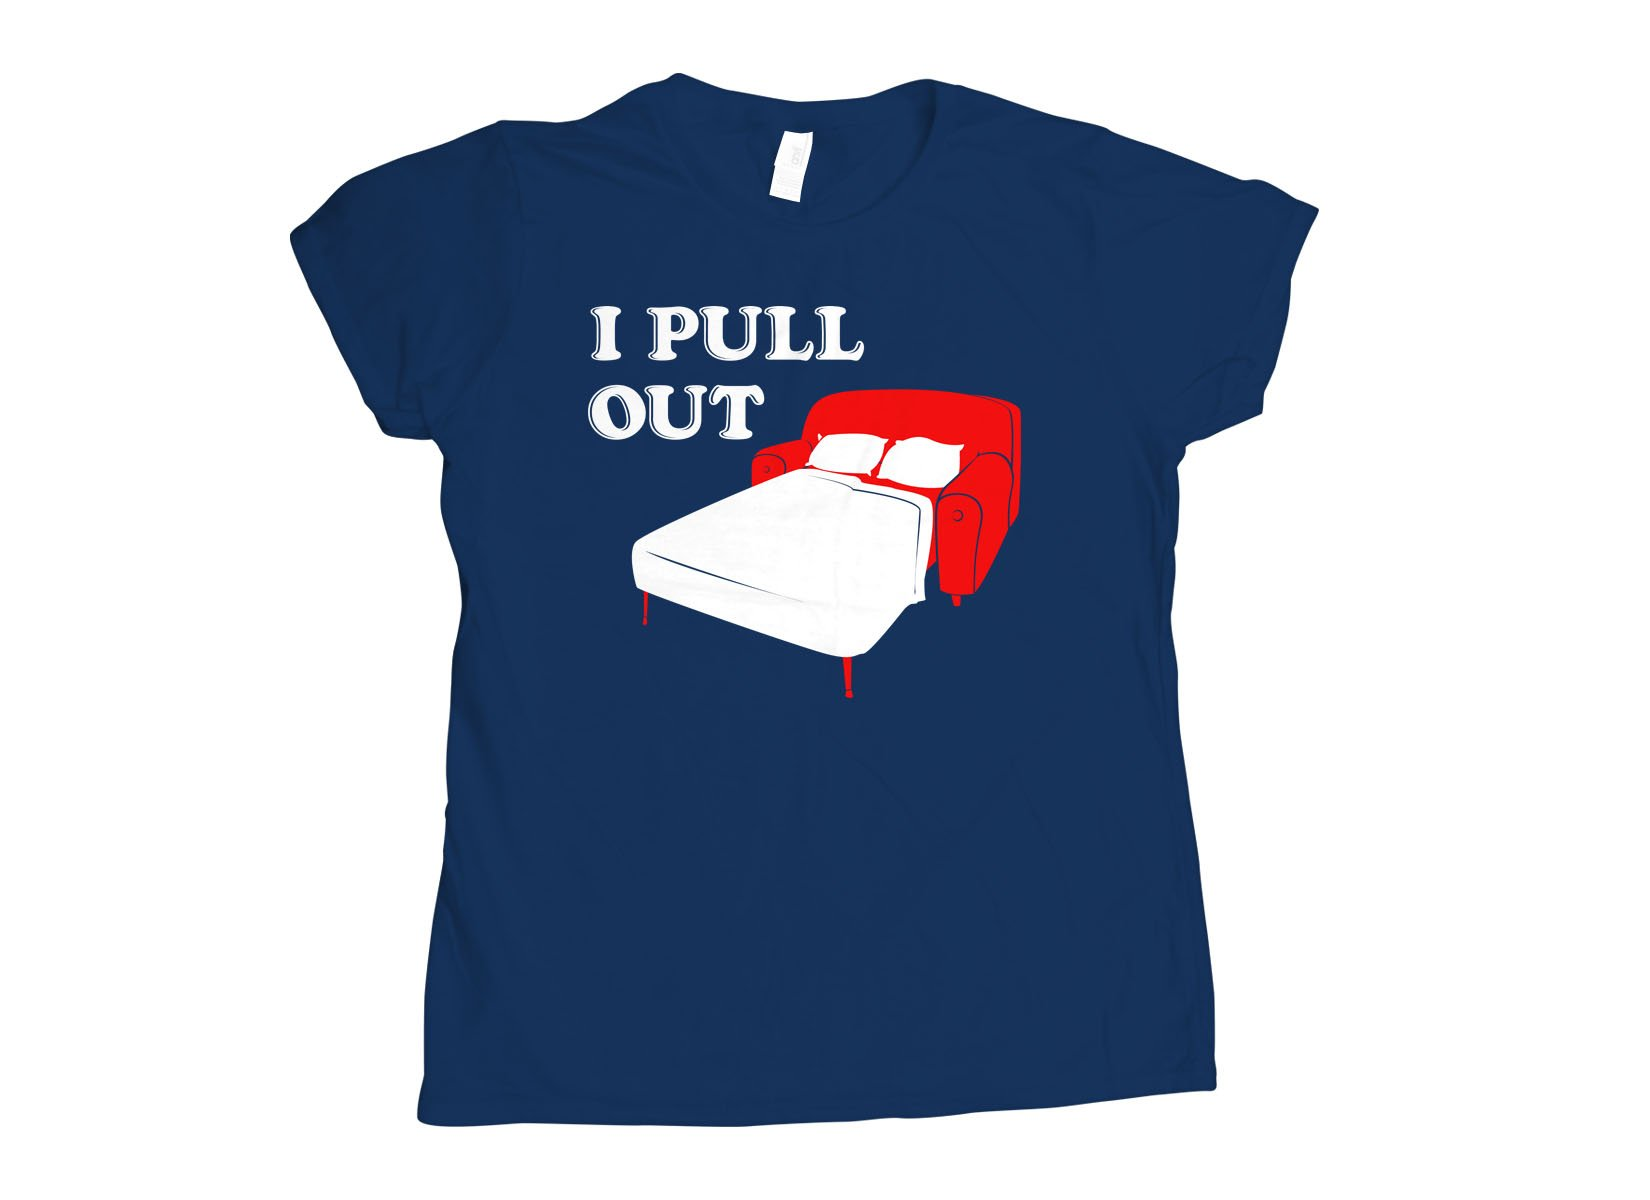 I Pull Out on Womens T-Shirt